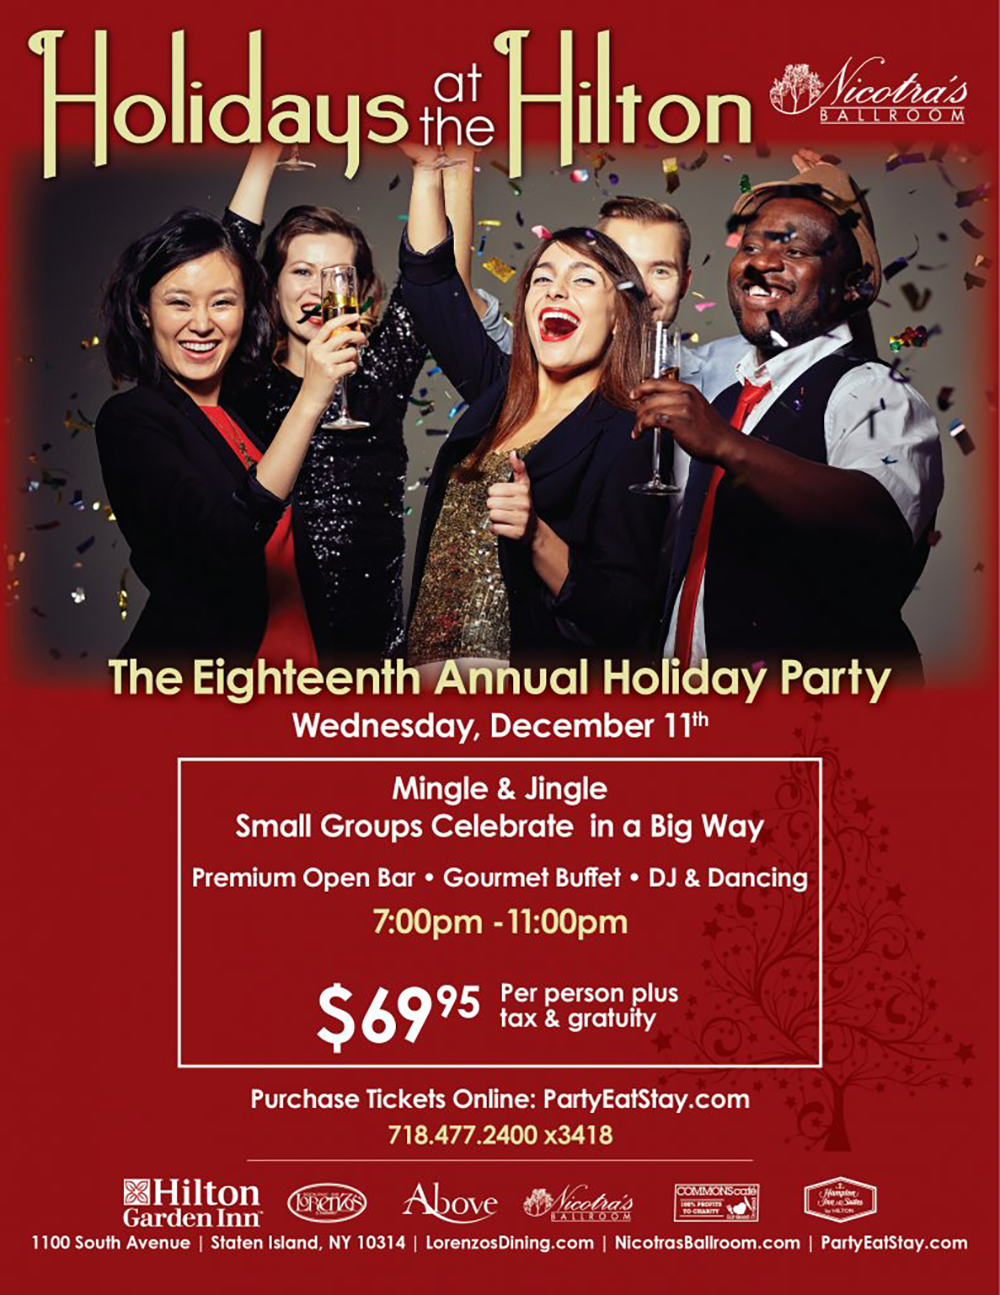 The Eighteenth Annual Holiday Party